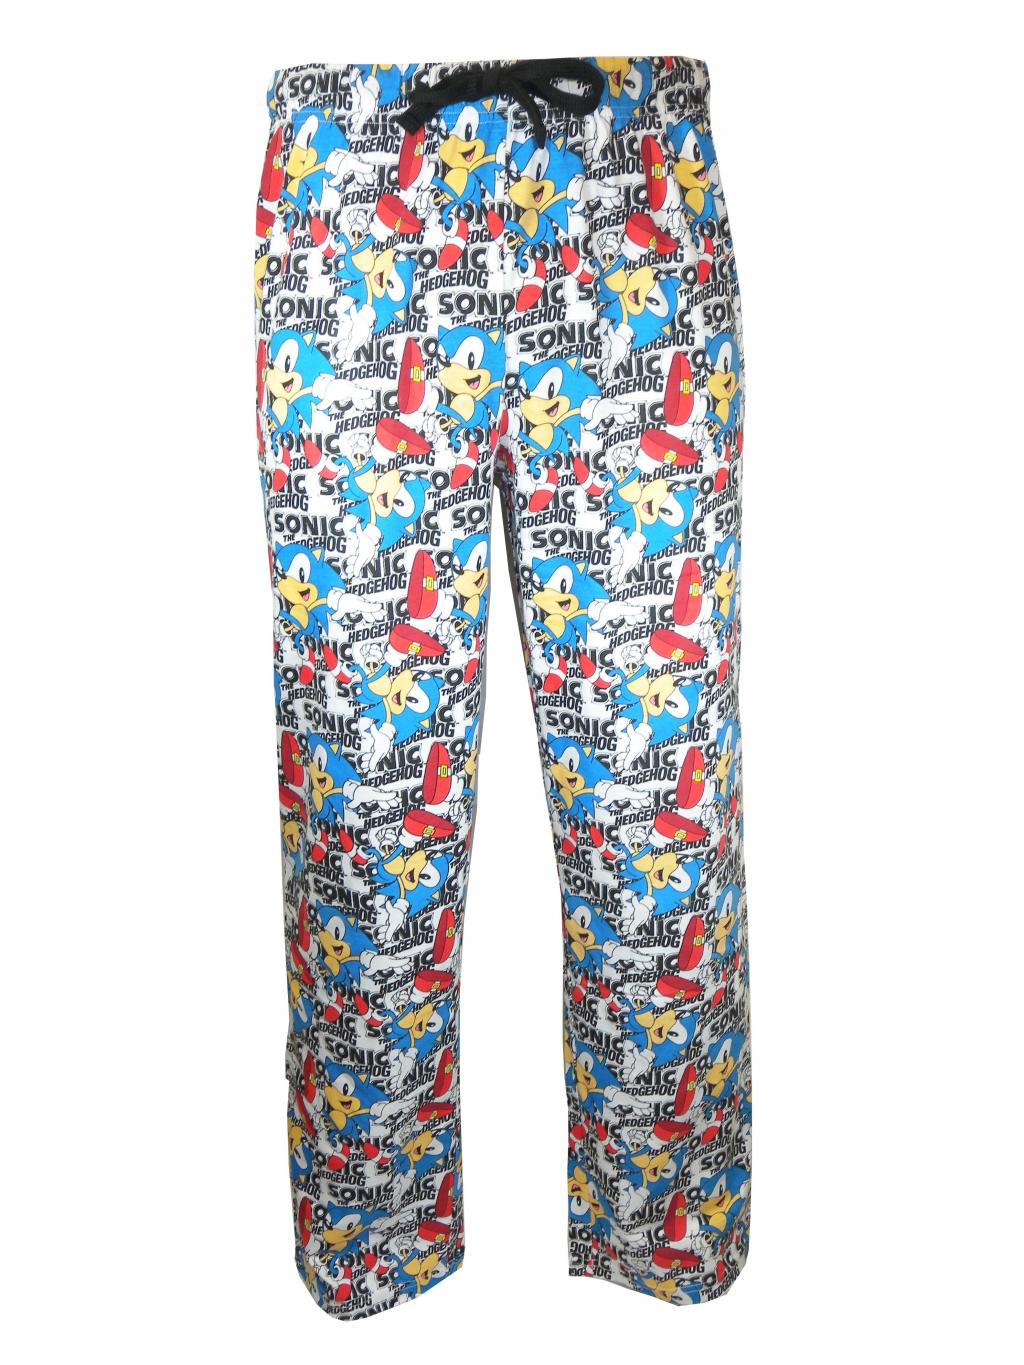 SONIC - Pantalon Pyjama - Black and White (XXL)_2